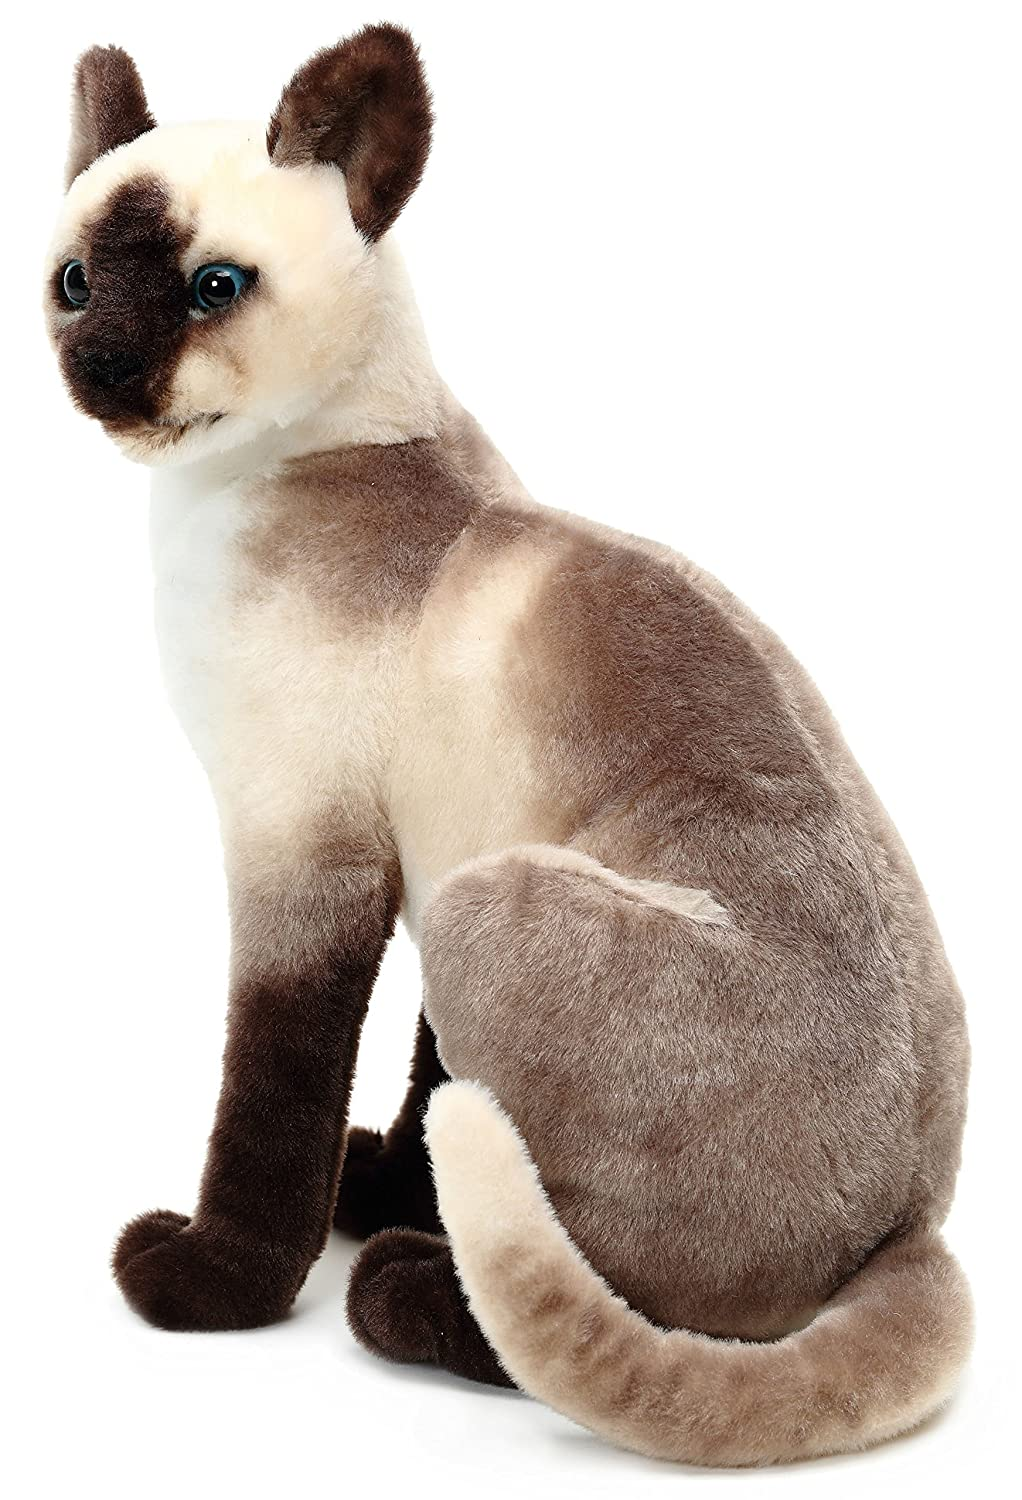 14 Inch Stuffed Animal Plush VIAHART Stefan The Siamese Cat by Tiger Tale Toys